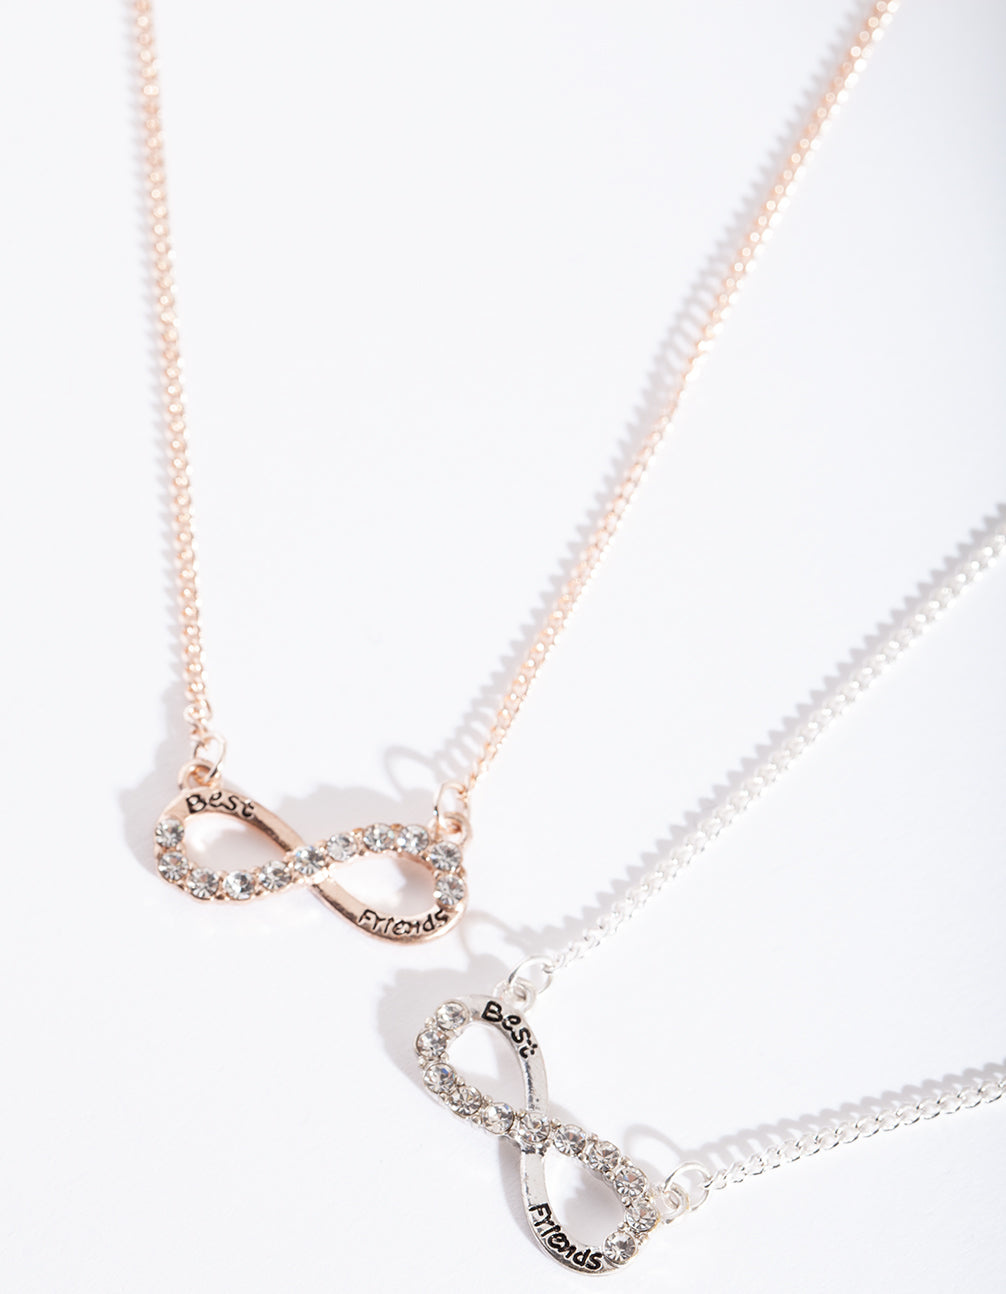 Mixed Metal Best Friend Infinity Necklace Set